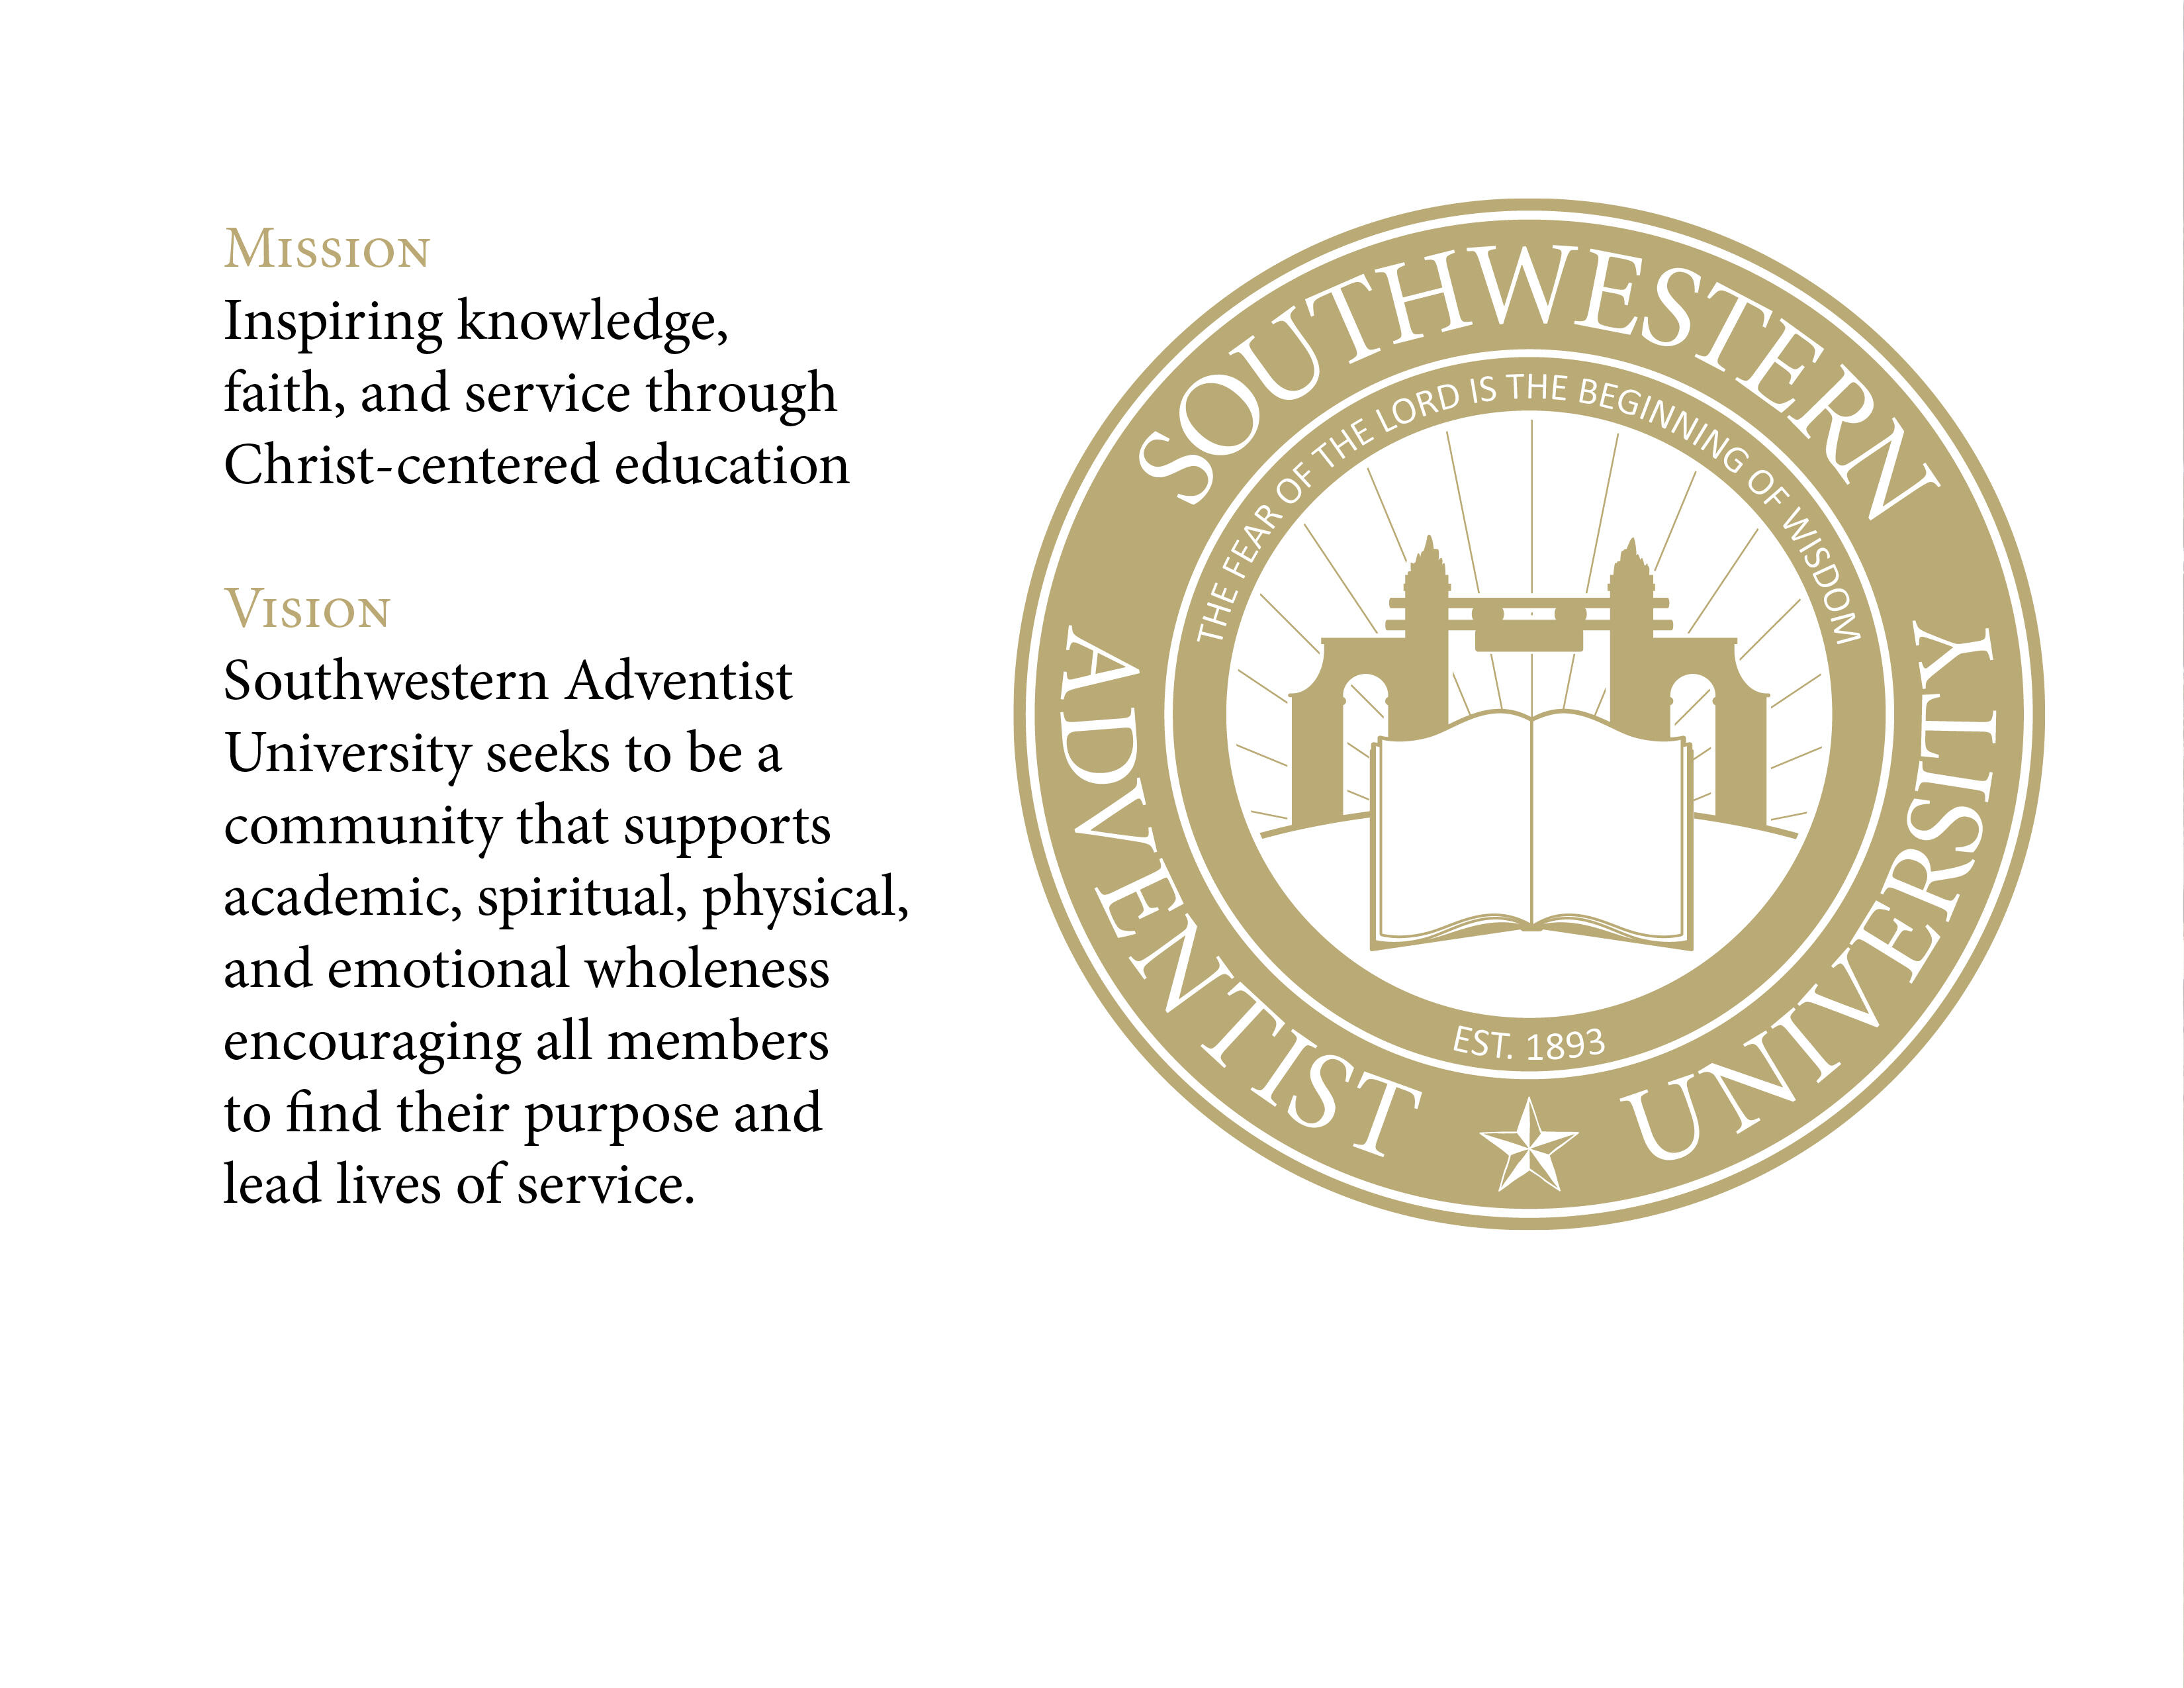 White photo stating the mission and vision of Southwestern Adventist University